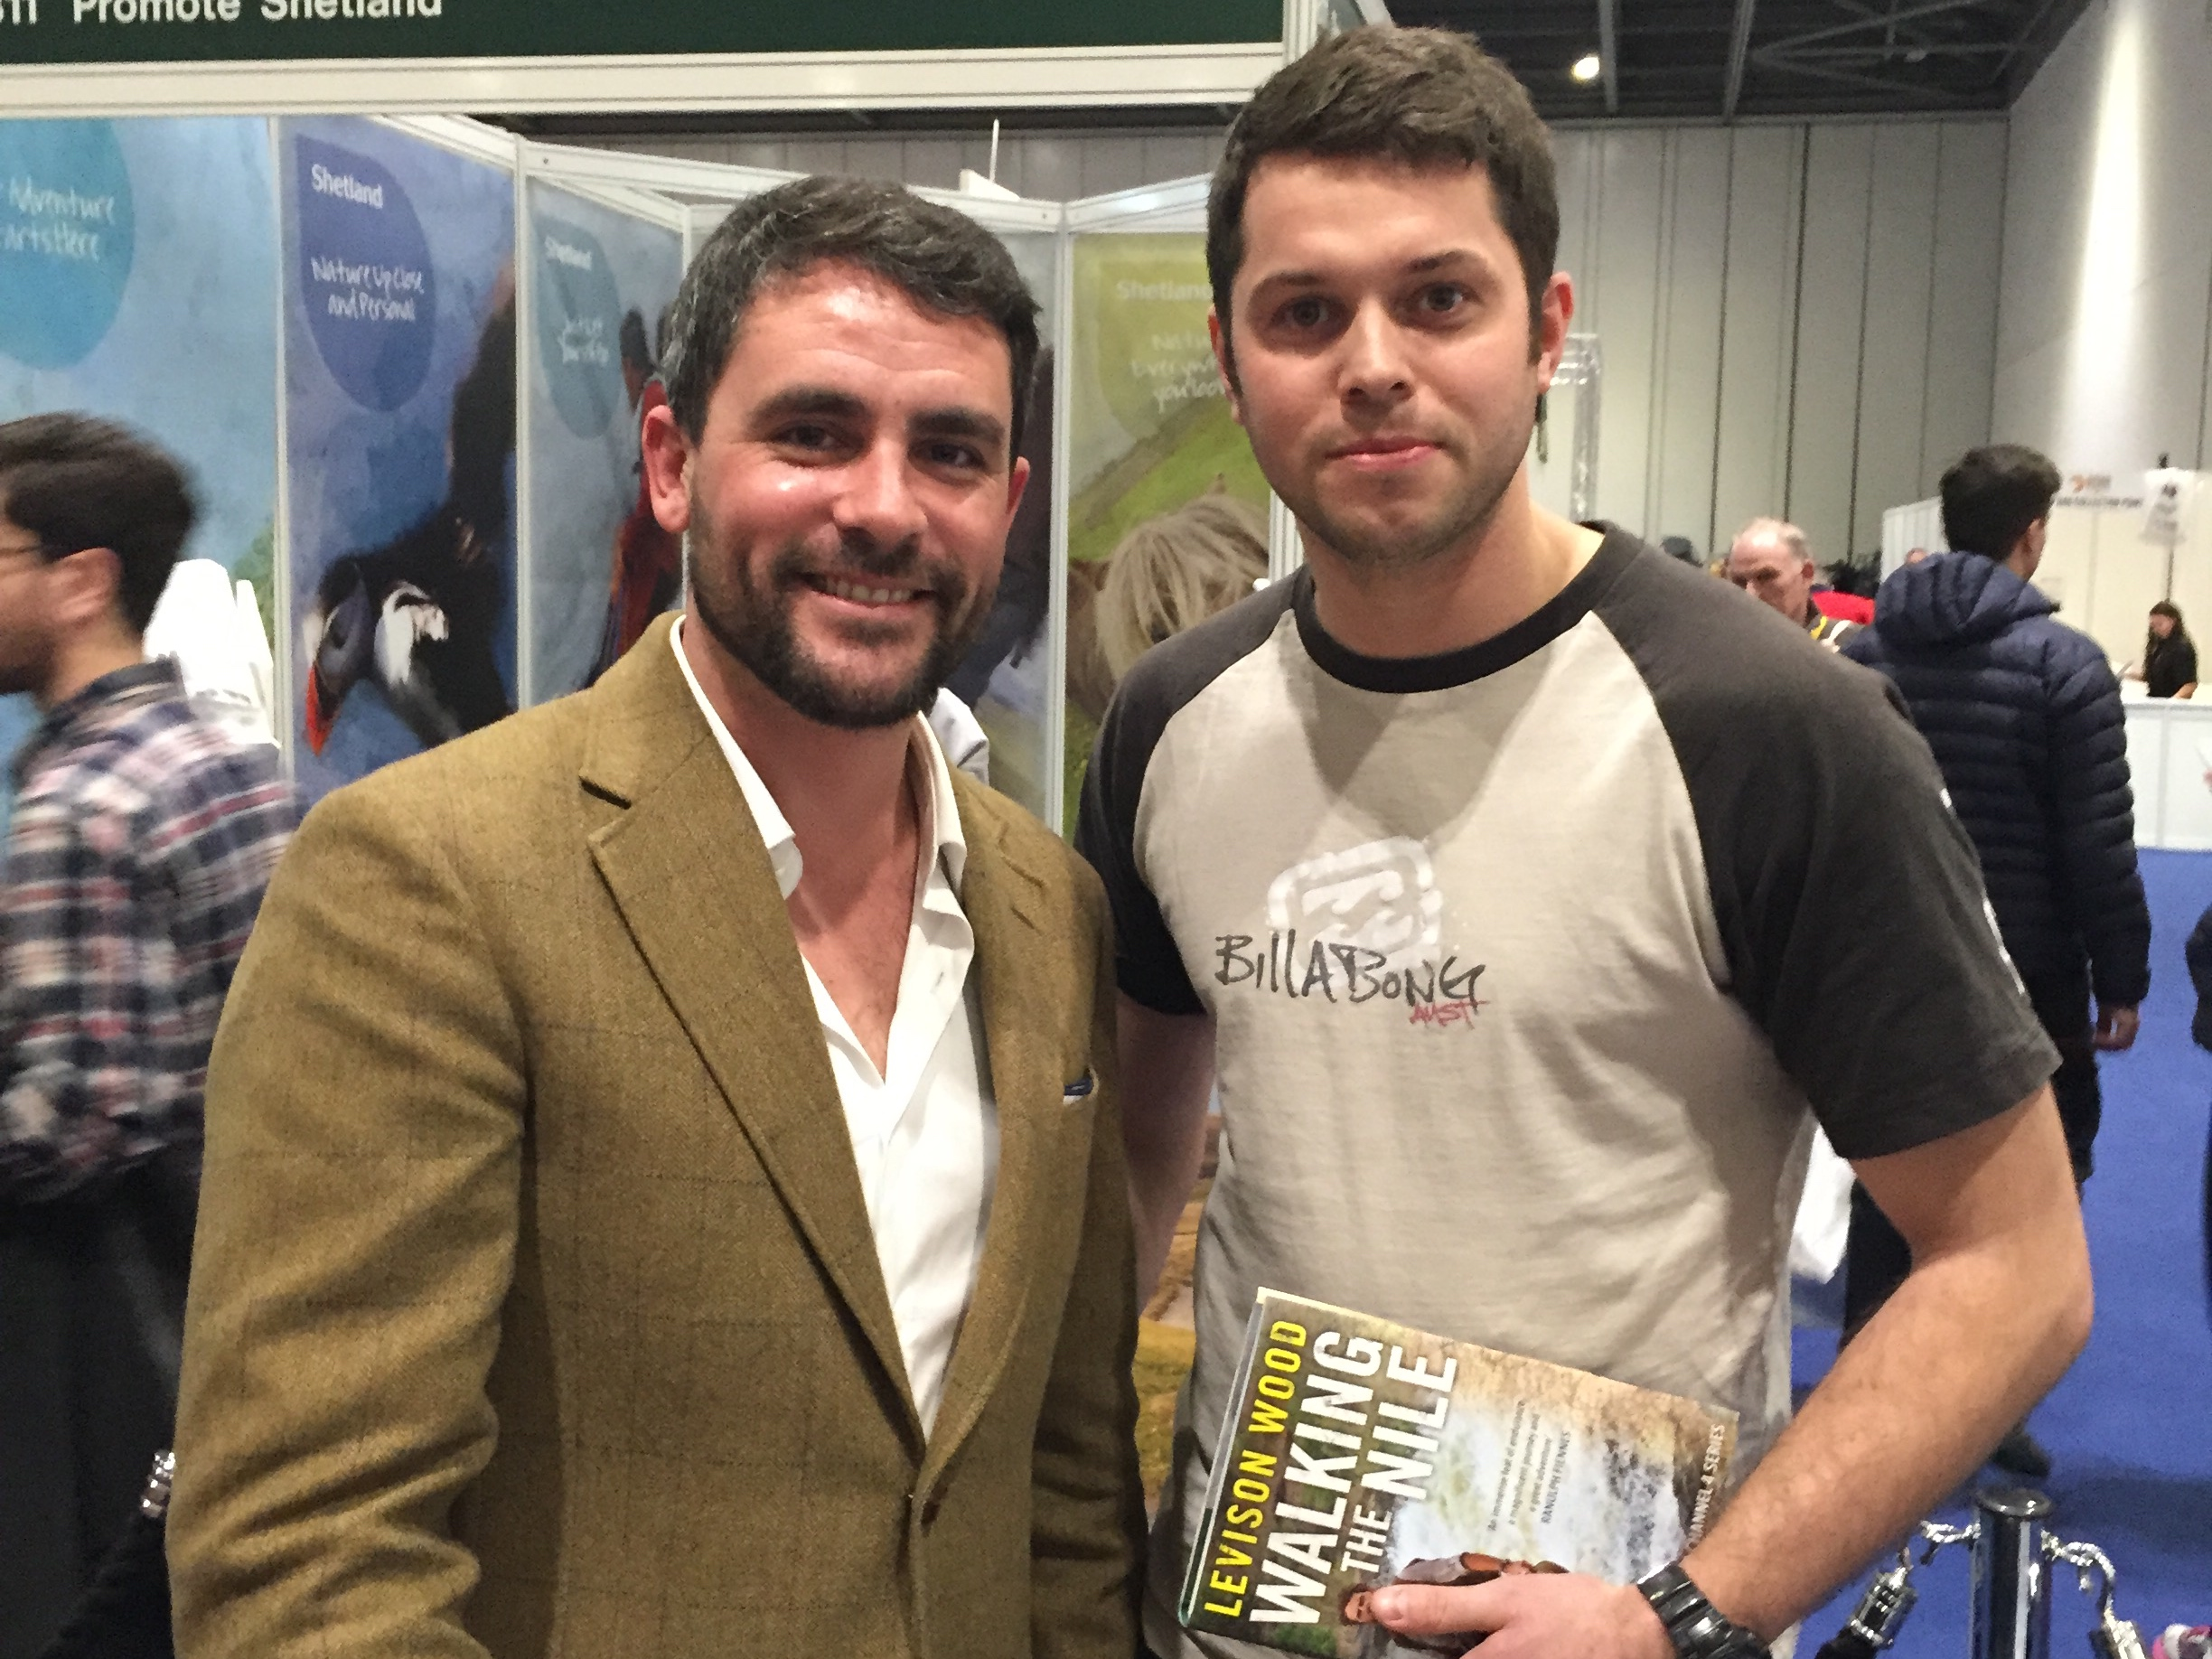 Got to meet Levison Wood after which was cool.